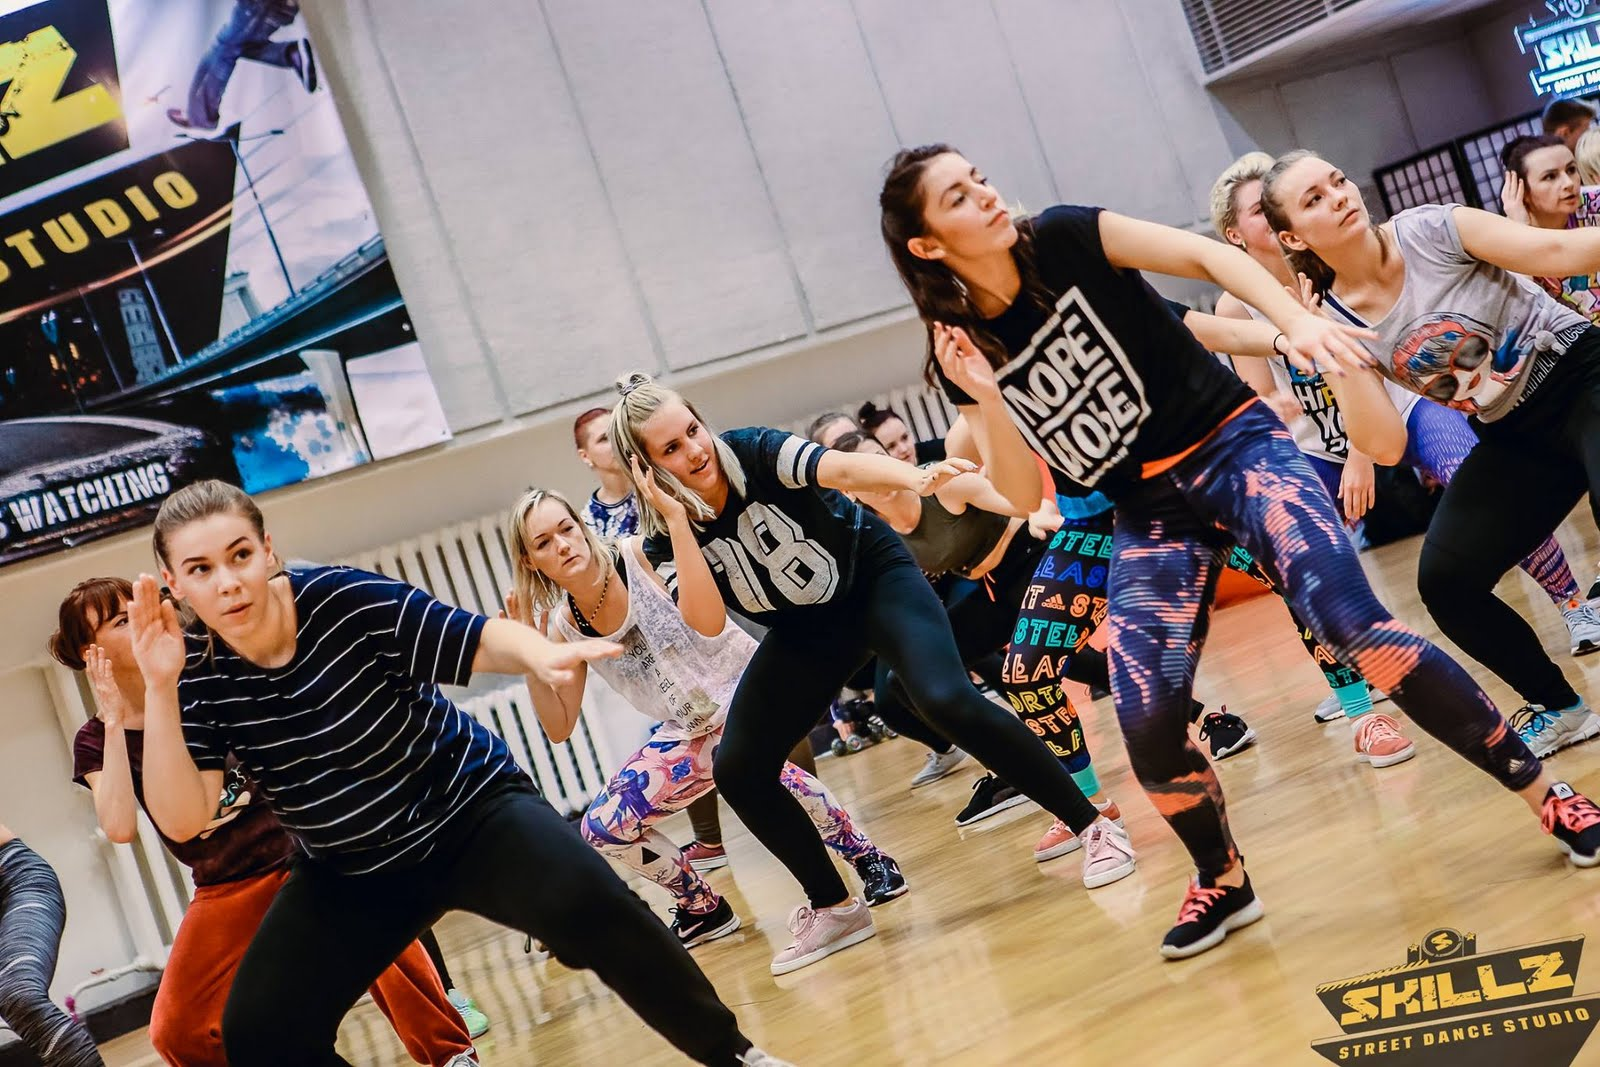 Dancehall workshop with Jiggy (France) - 15.jpg